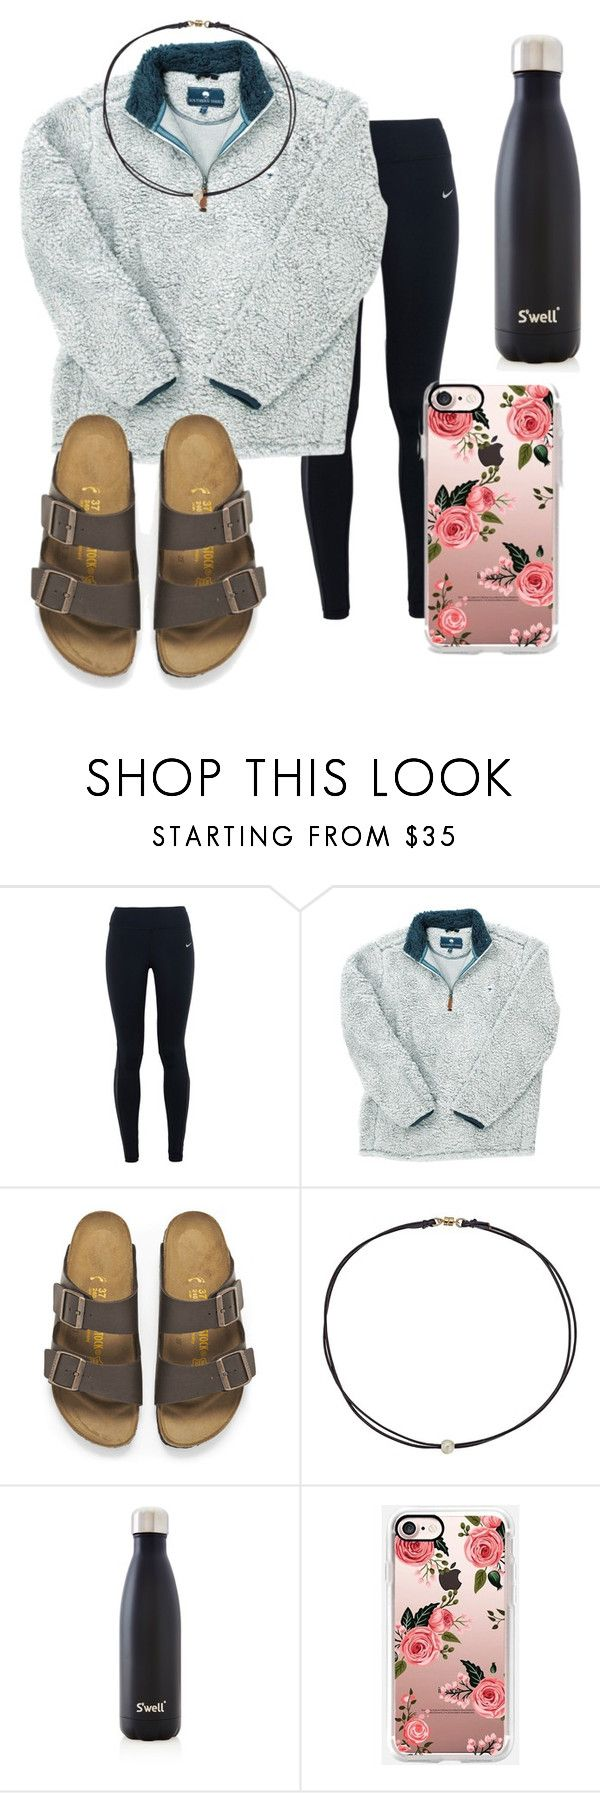 """Cozy"" by kayleenowlin ❤ liked on Polyvore featuring NIKE, Birkenstock, Dogeared and S'well"